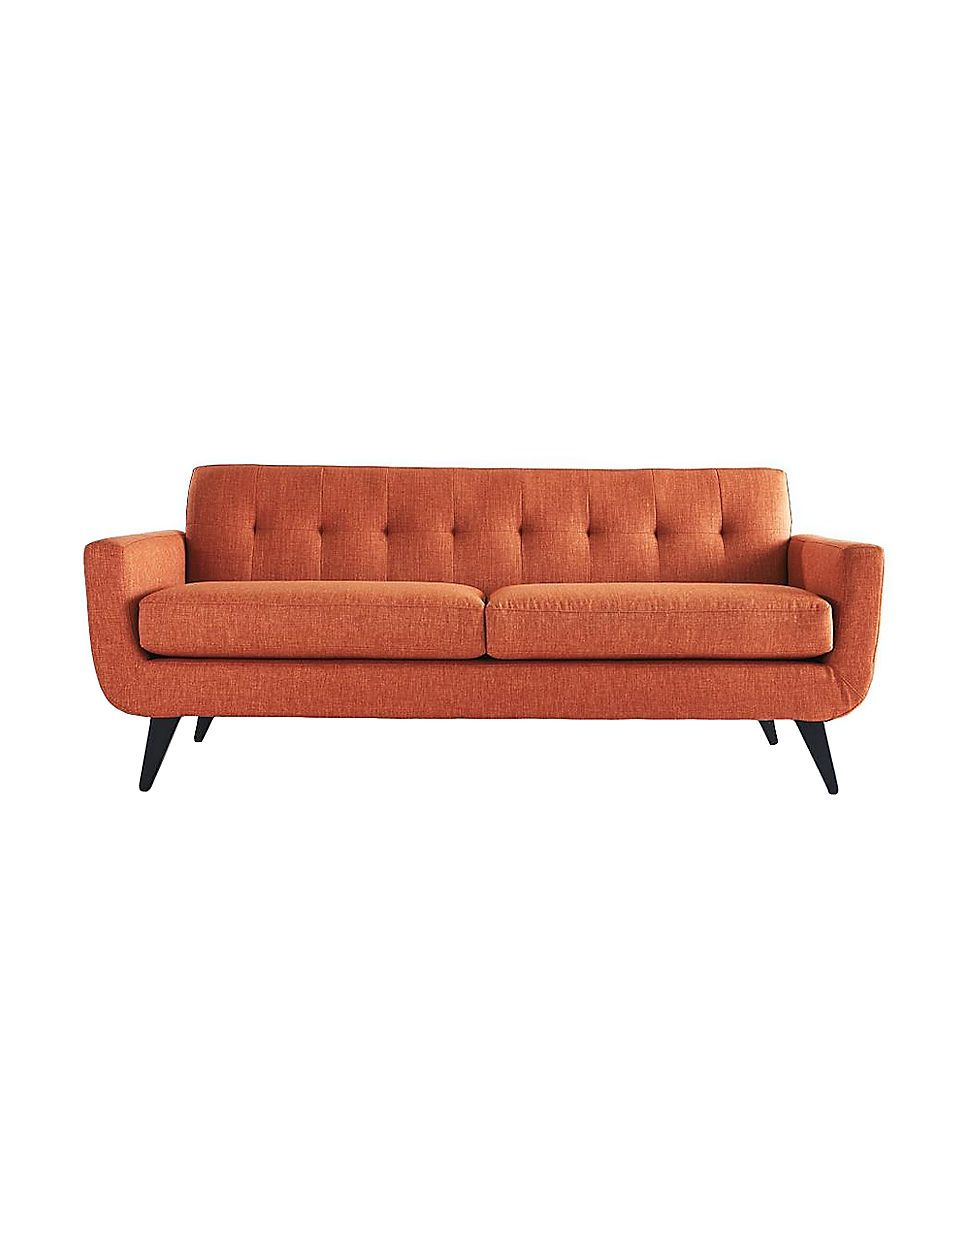 mid century modern sofa love the pumpkin orange colour home living hudson sofa with. Black Bedroom Furniture Sets. Home Design Ideas